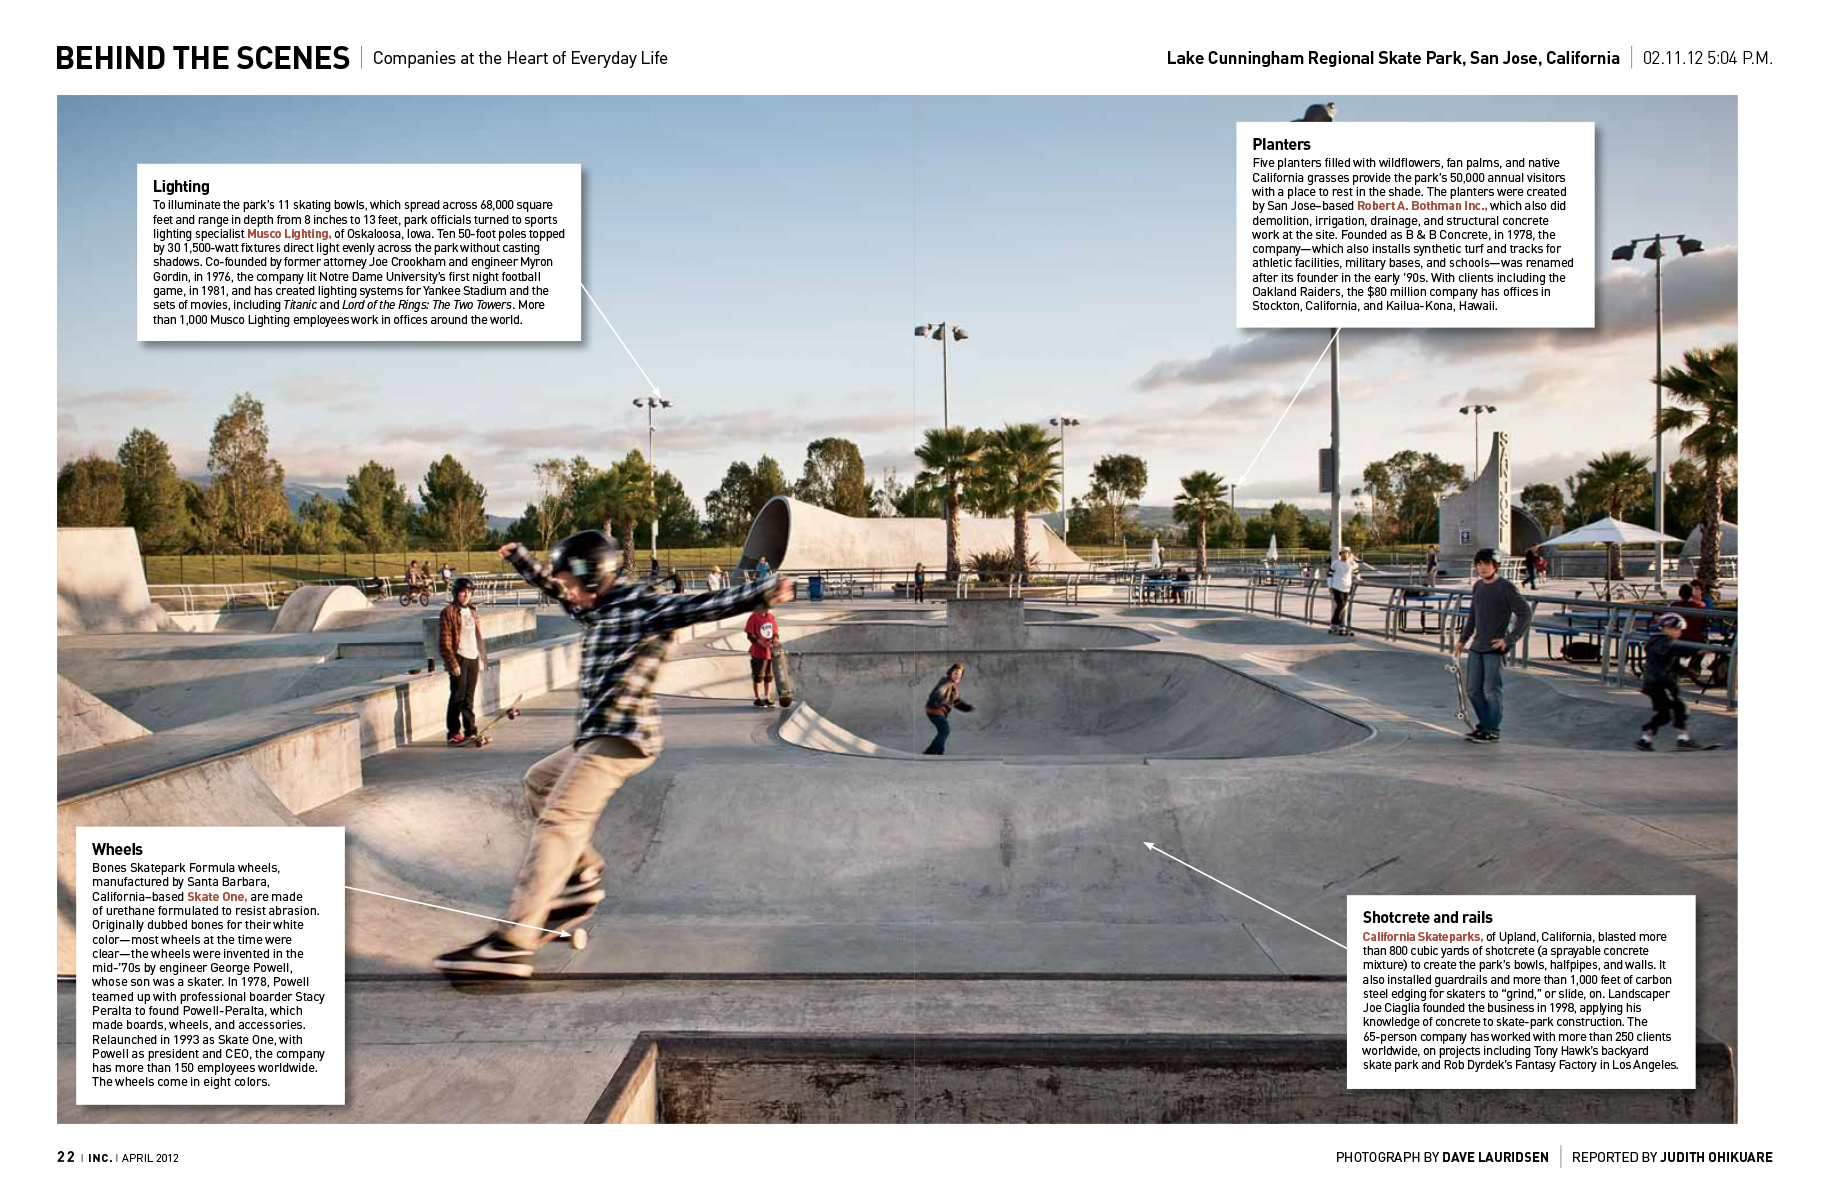 Skate park for Inc. Magazine